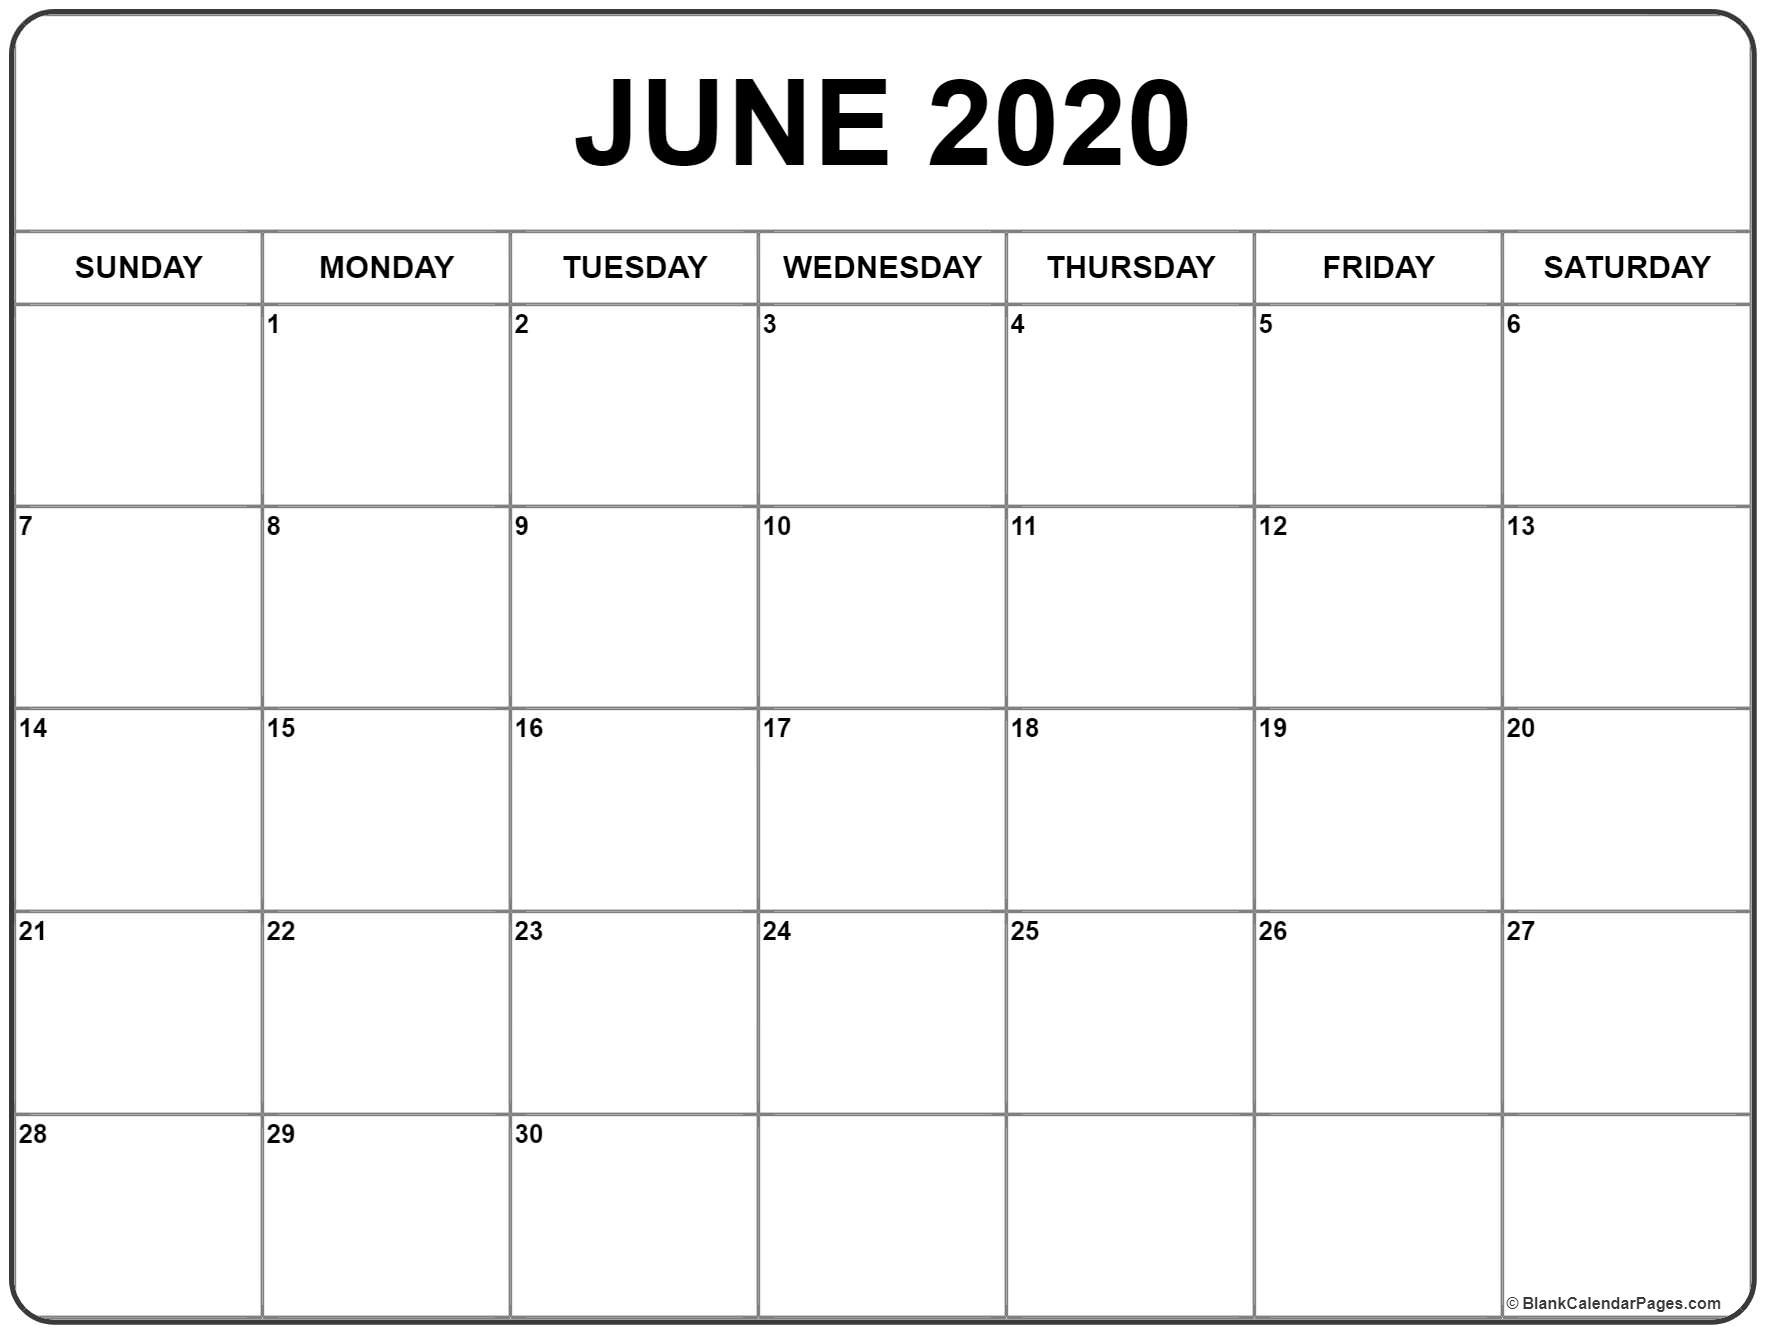 June 2020 Calendar | Free Printable Monthly Calendars-Print Off Monthly Calender For June And July 2020